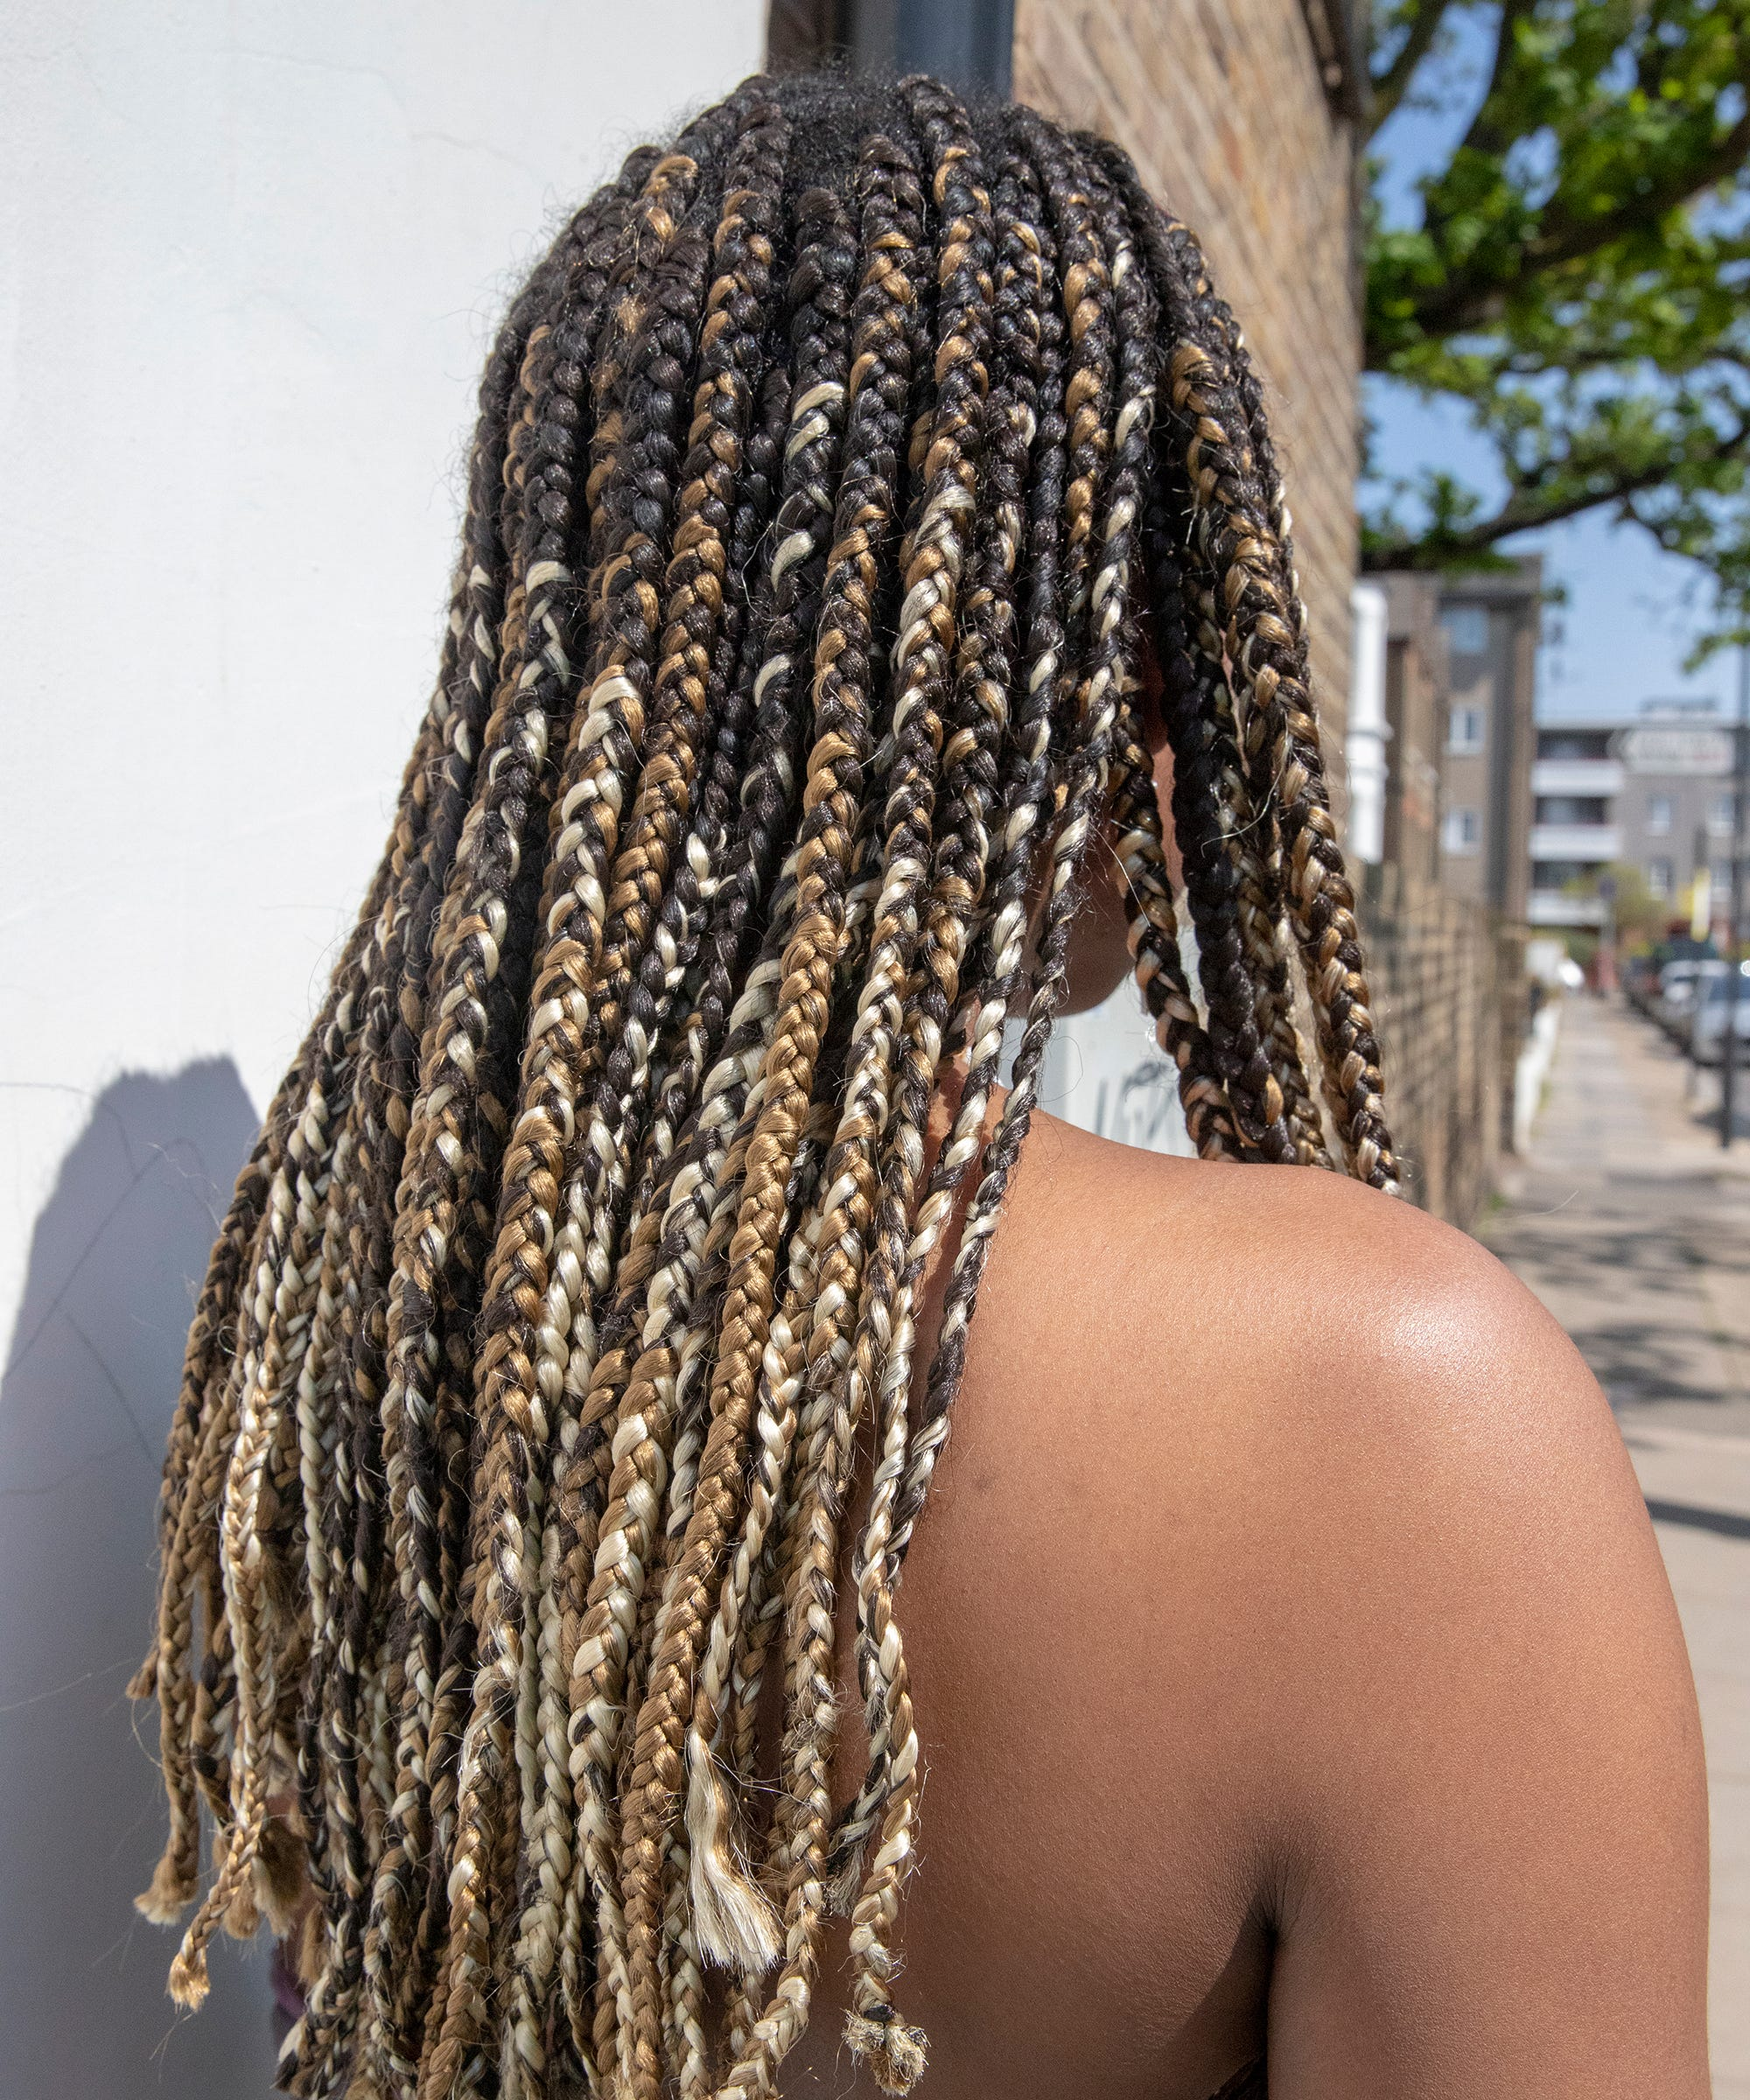 Frizzy Braid Tips How To Keep Braids From Frizzing Up